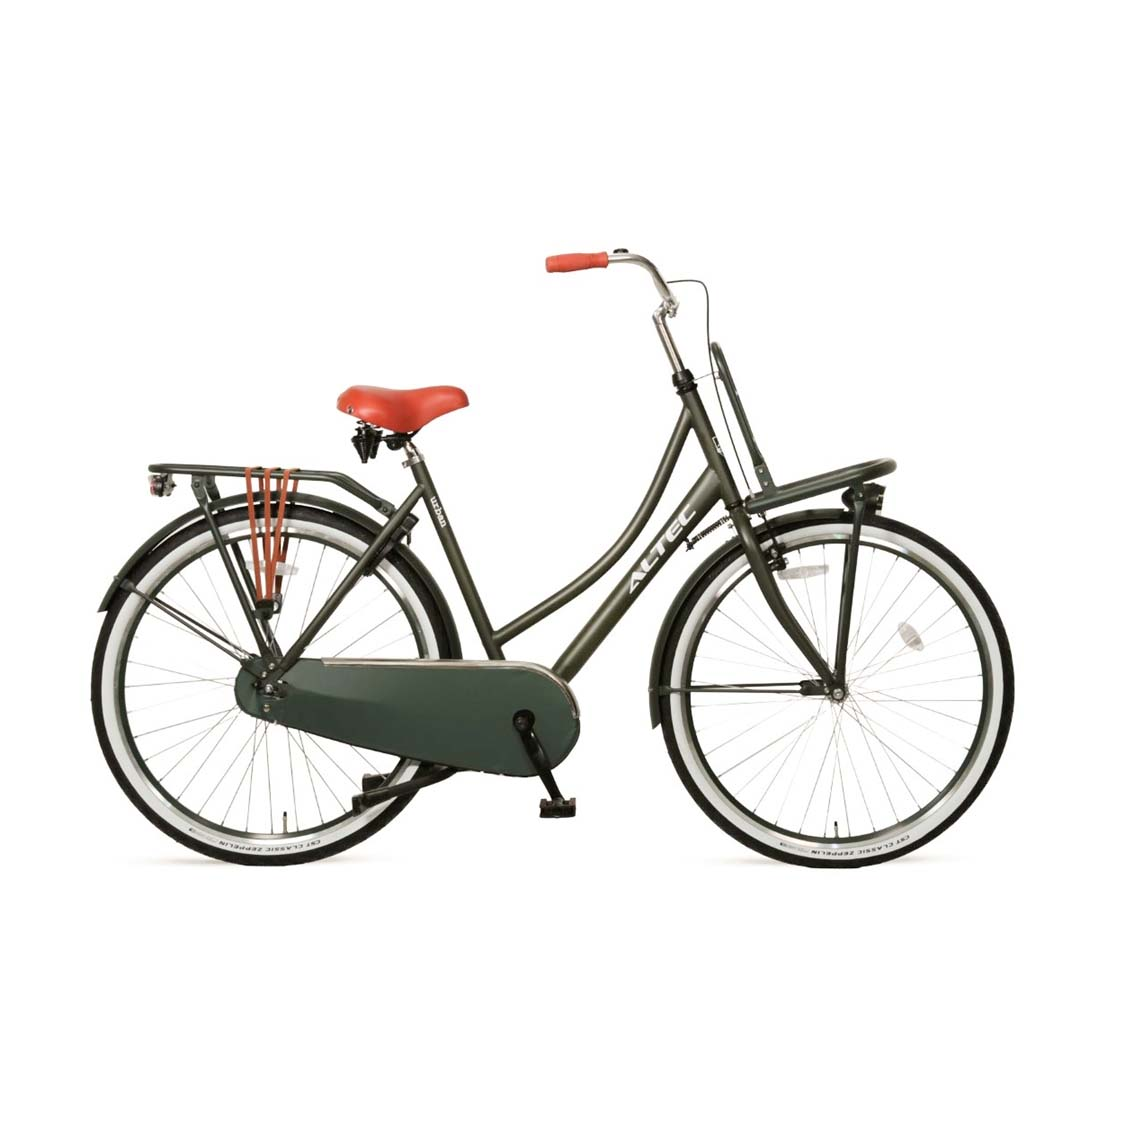 Altec-Urban-28inch-Transportfiets-50-Army-Green-2019 copy